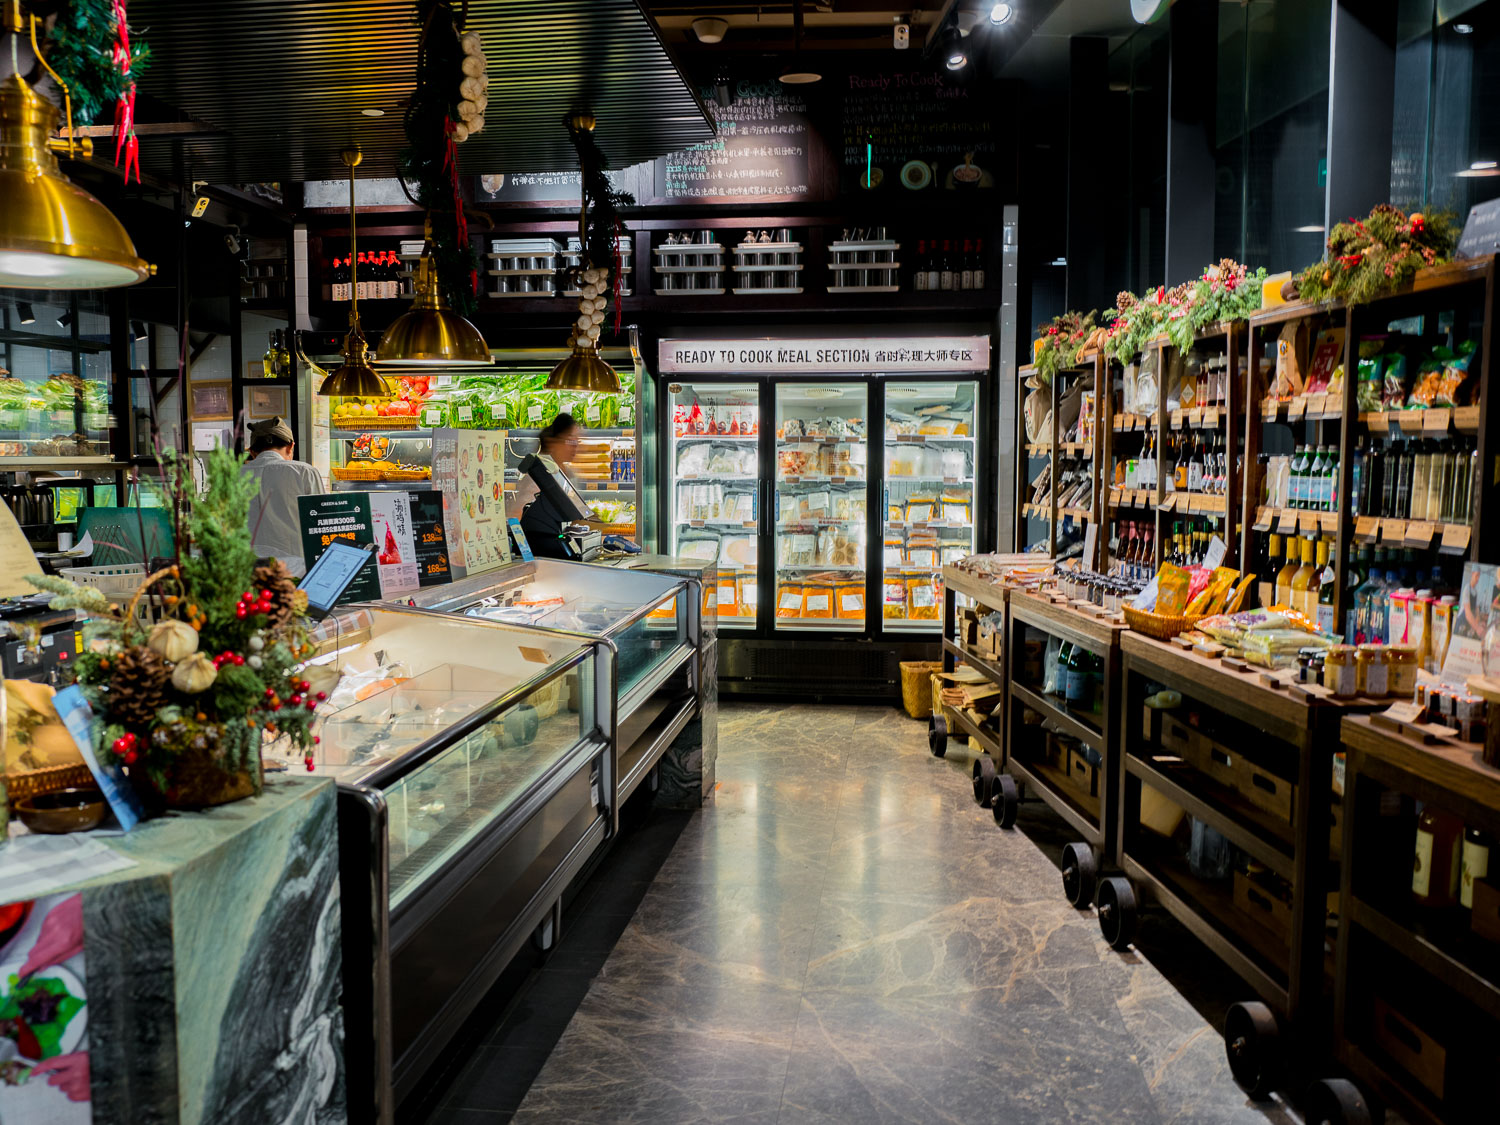 Qimin's Organic Produce & Products Market inside the Restaurant (lots of products from Green & Safe)